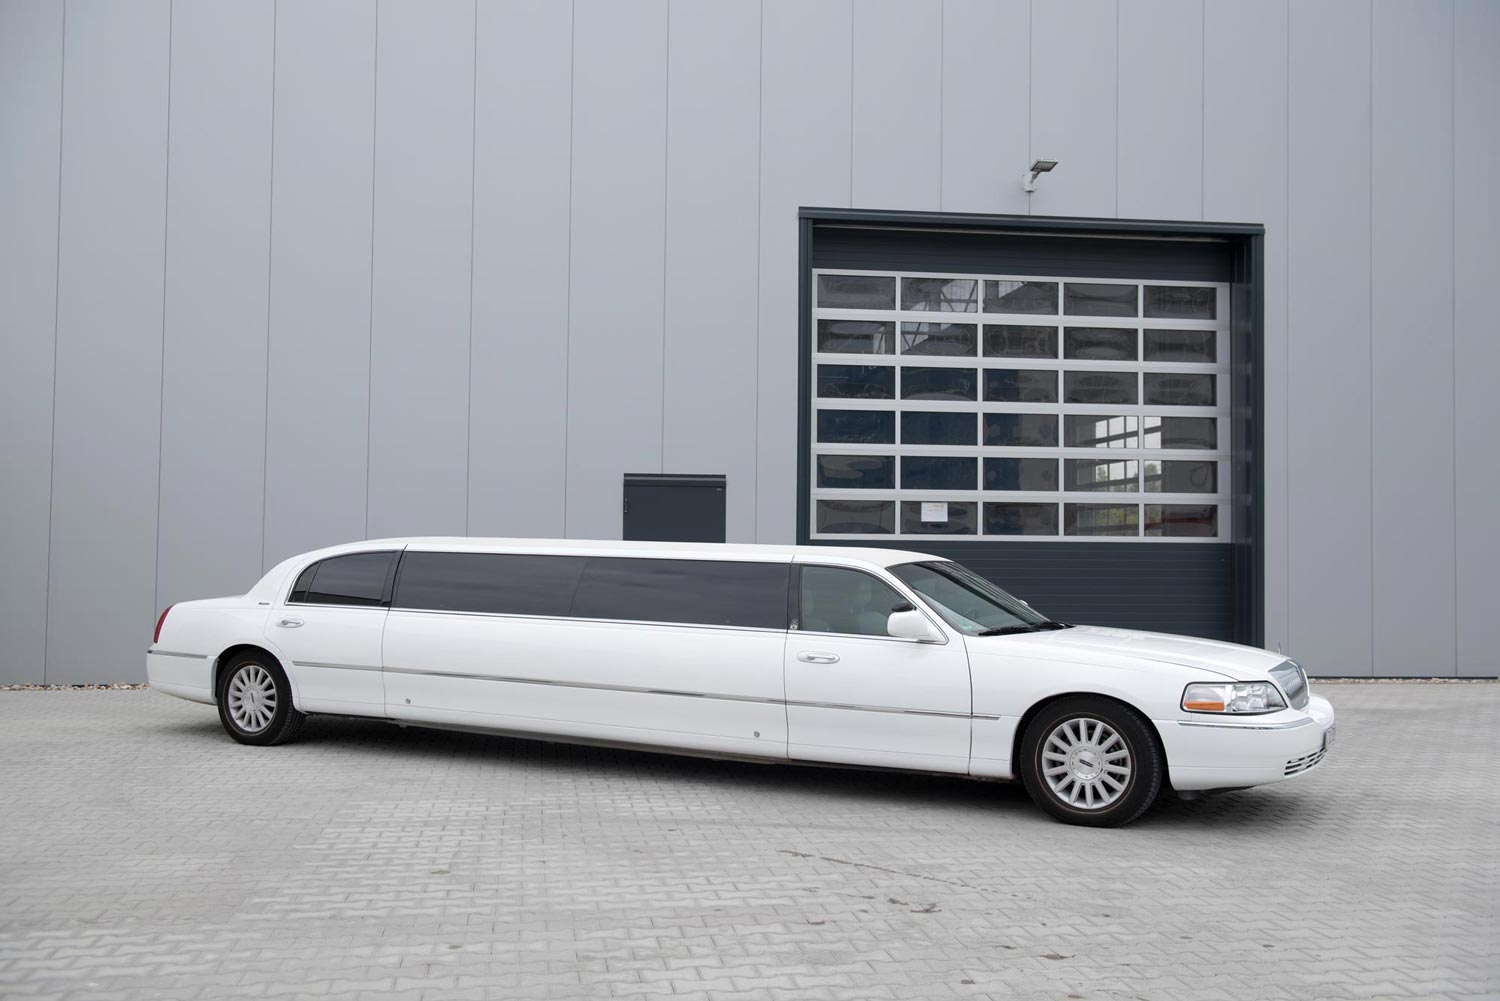 Lincoln Towncar Stretchlimousine